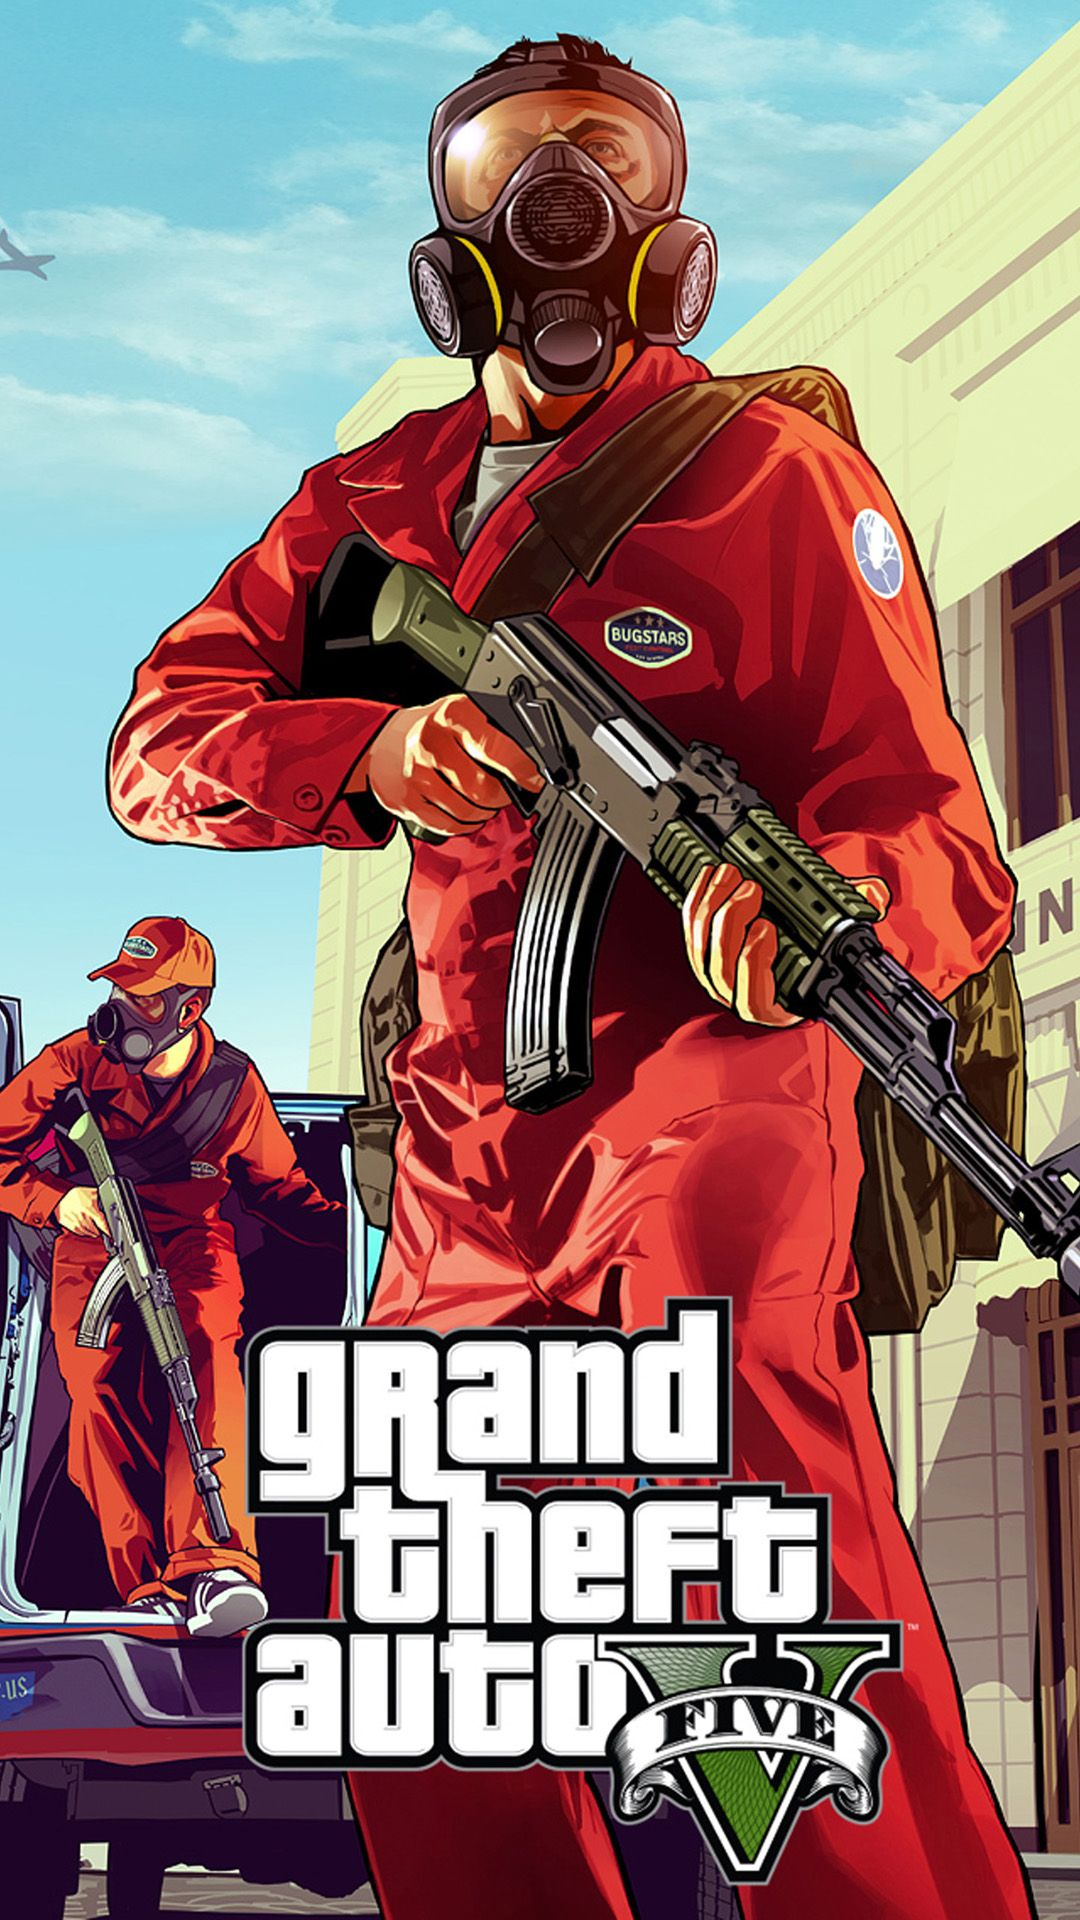 gta5 wallpaper games Oyunlar, Oyun, Ikiz